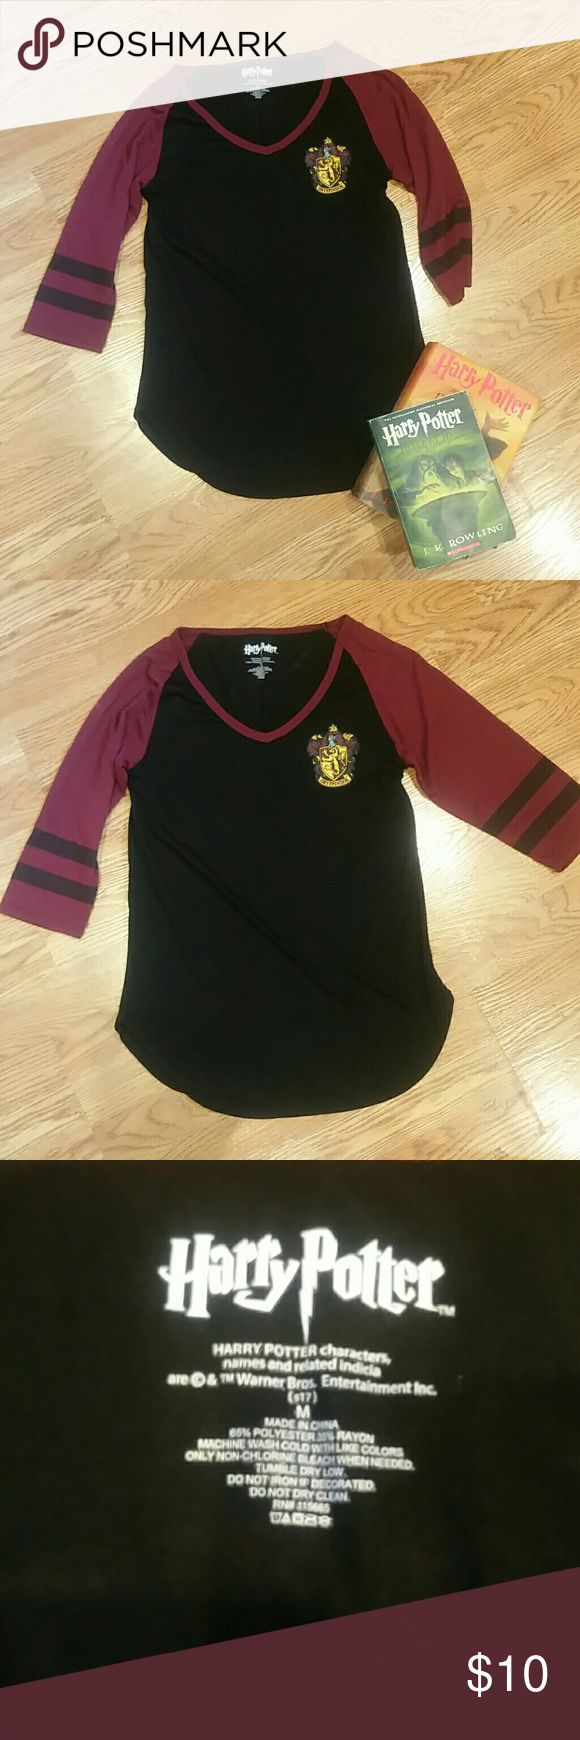 "Harry Potter Gryffindor T-shirt Maroon and black Harry Potter tee with Gryffindor House Seal. 3/4 sleeves. Garment is in like new condition, no holes or stains. Smoke-free, pet-free household.  Measurements  • Armpit to armpit 16.5"" • Sleeve 14"" • Length from the middle (longest part) 25.5"" unknown Tops"